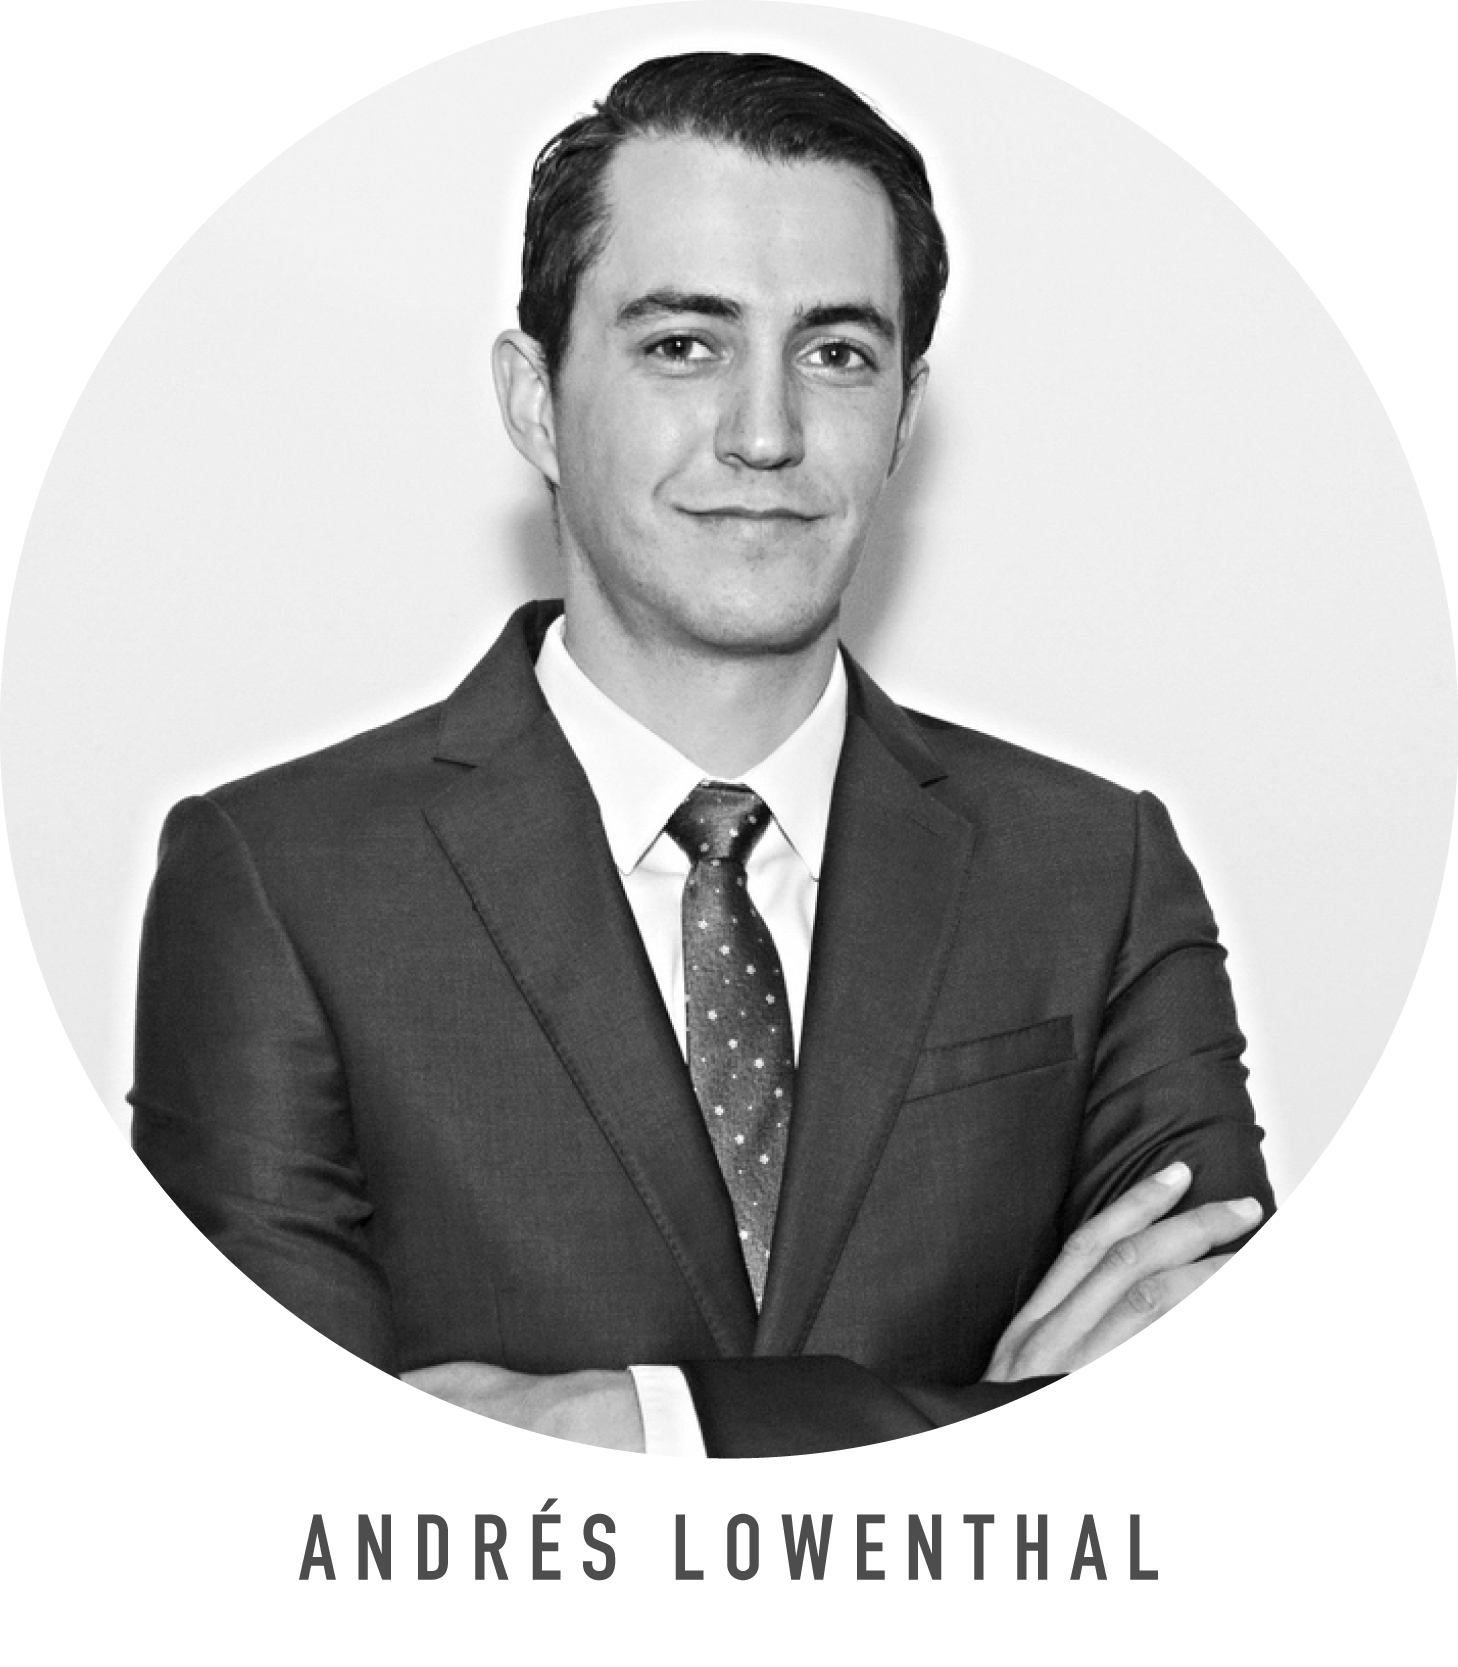 ANDRES_LOWENTHAL.png